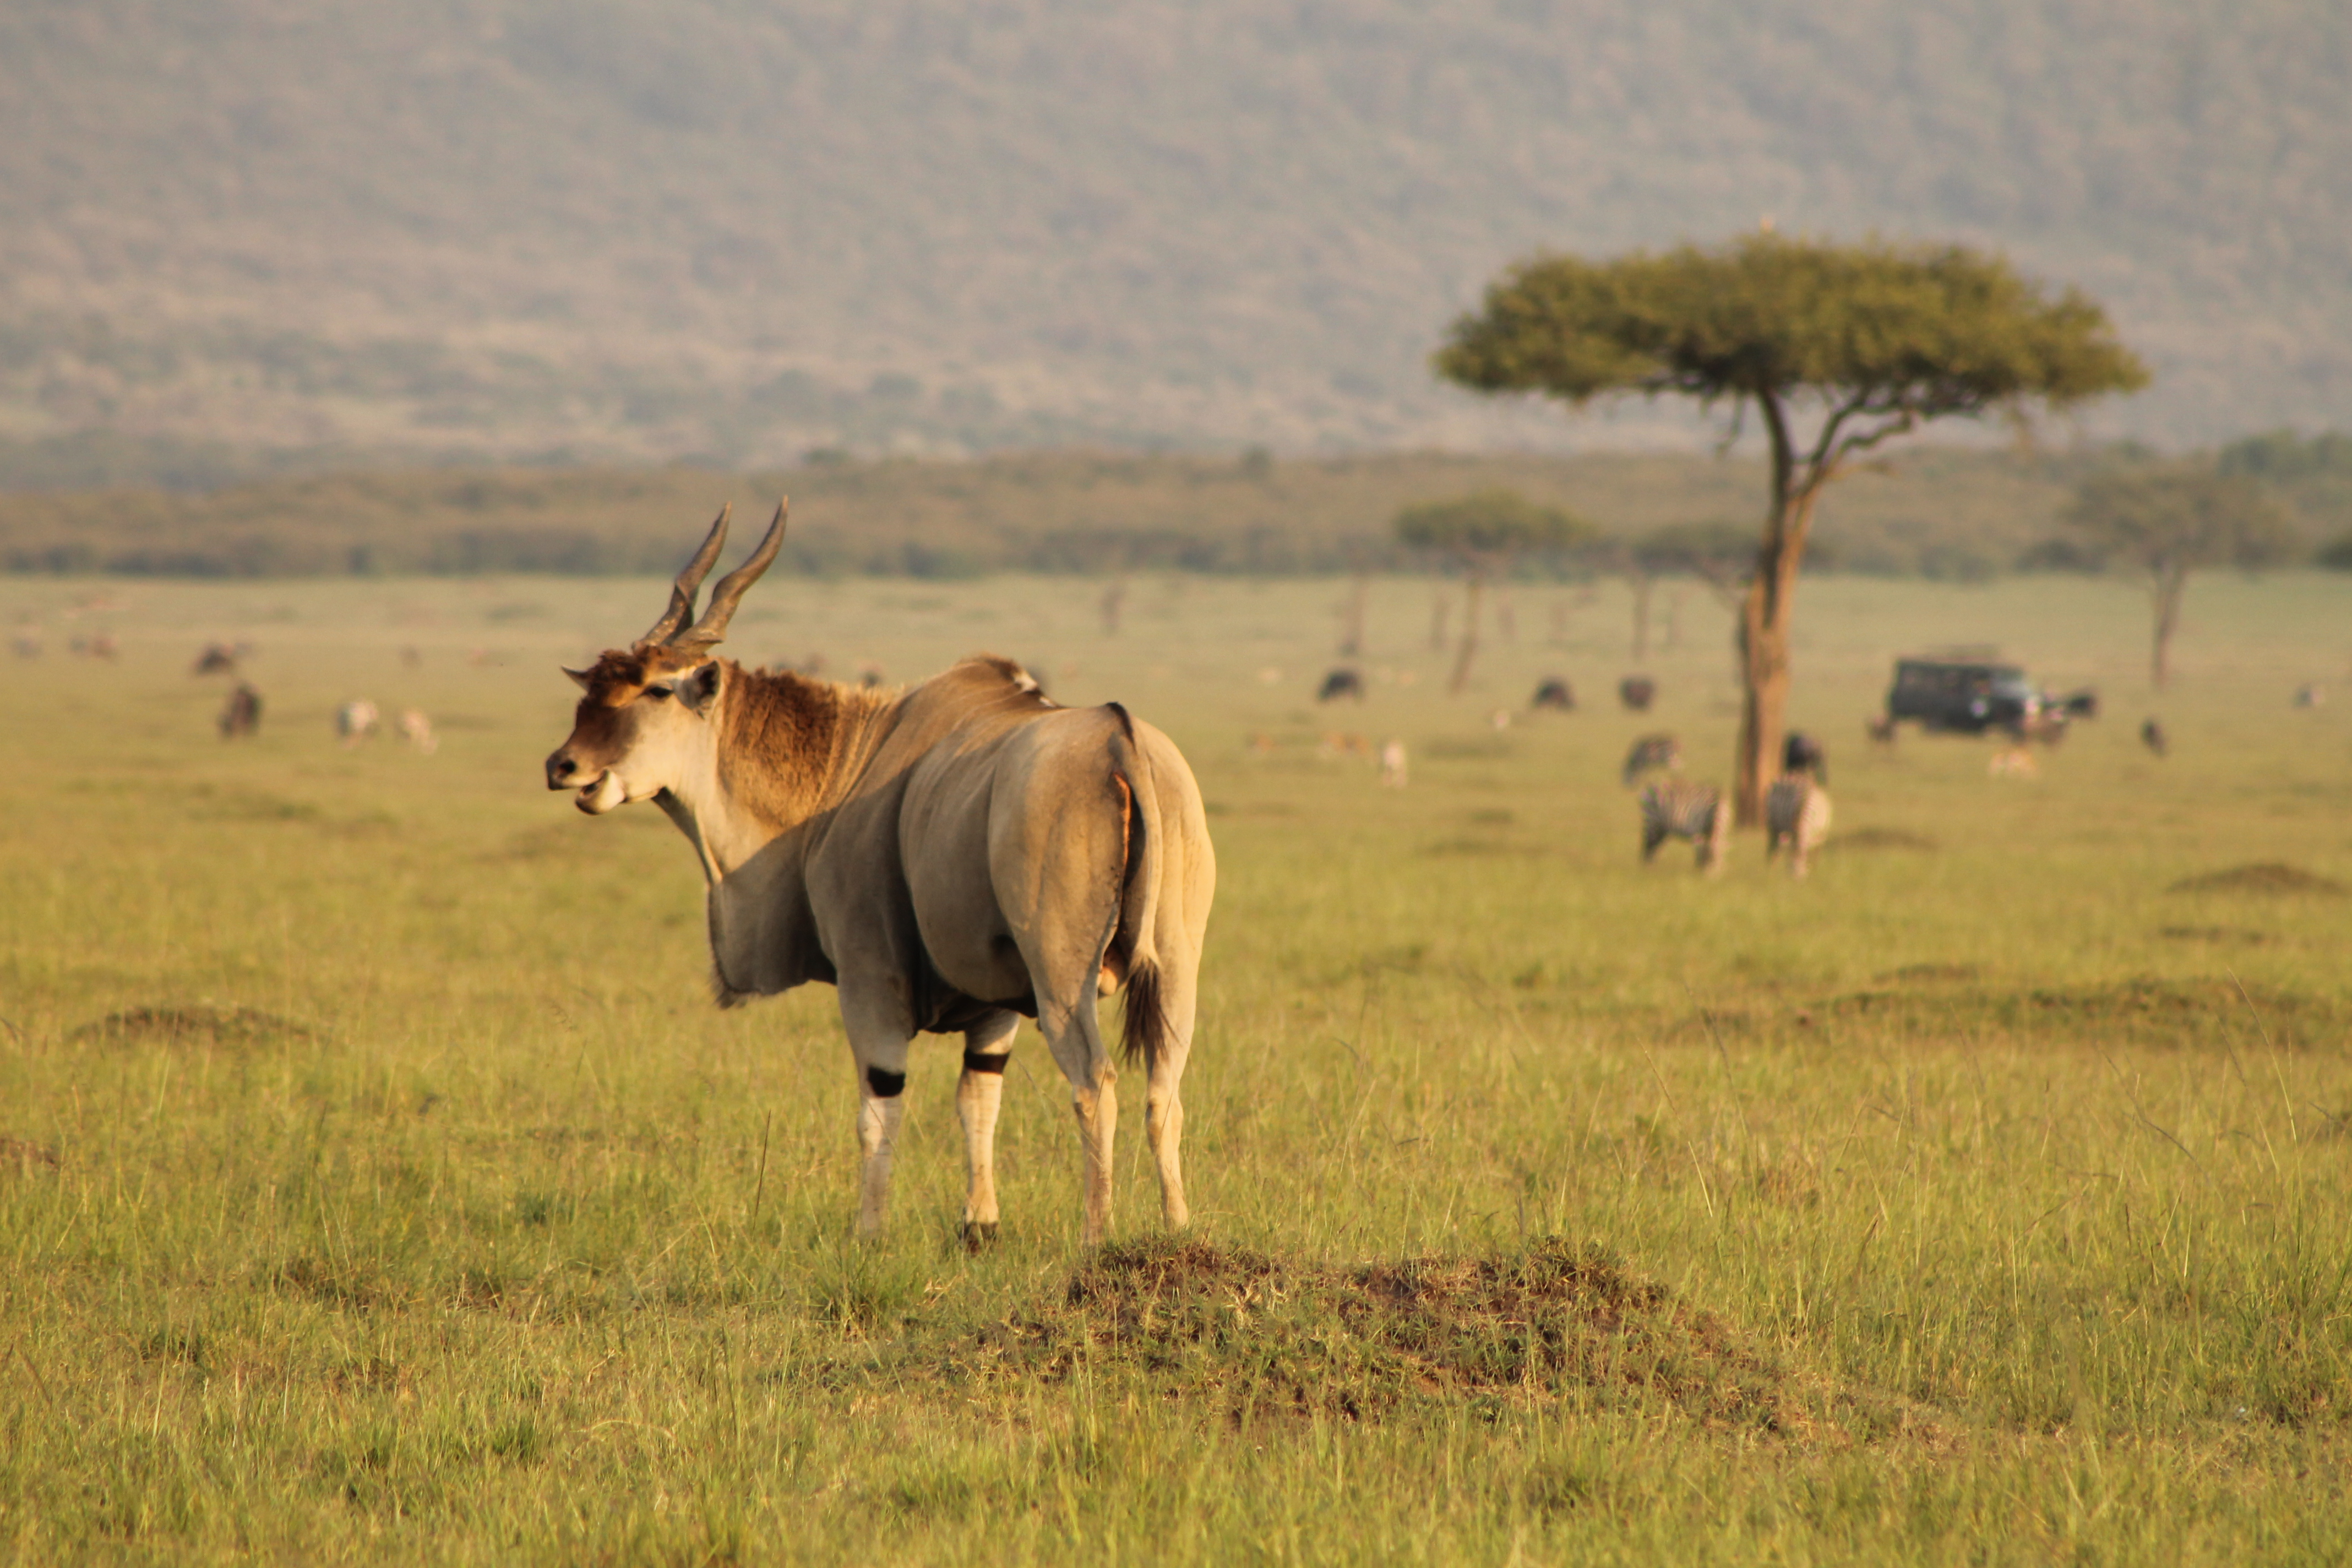 Eland on the plains